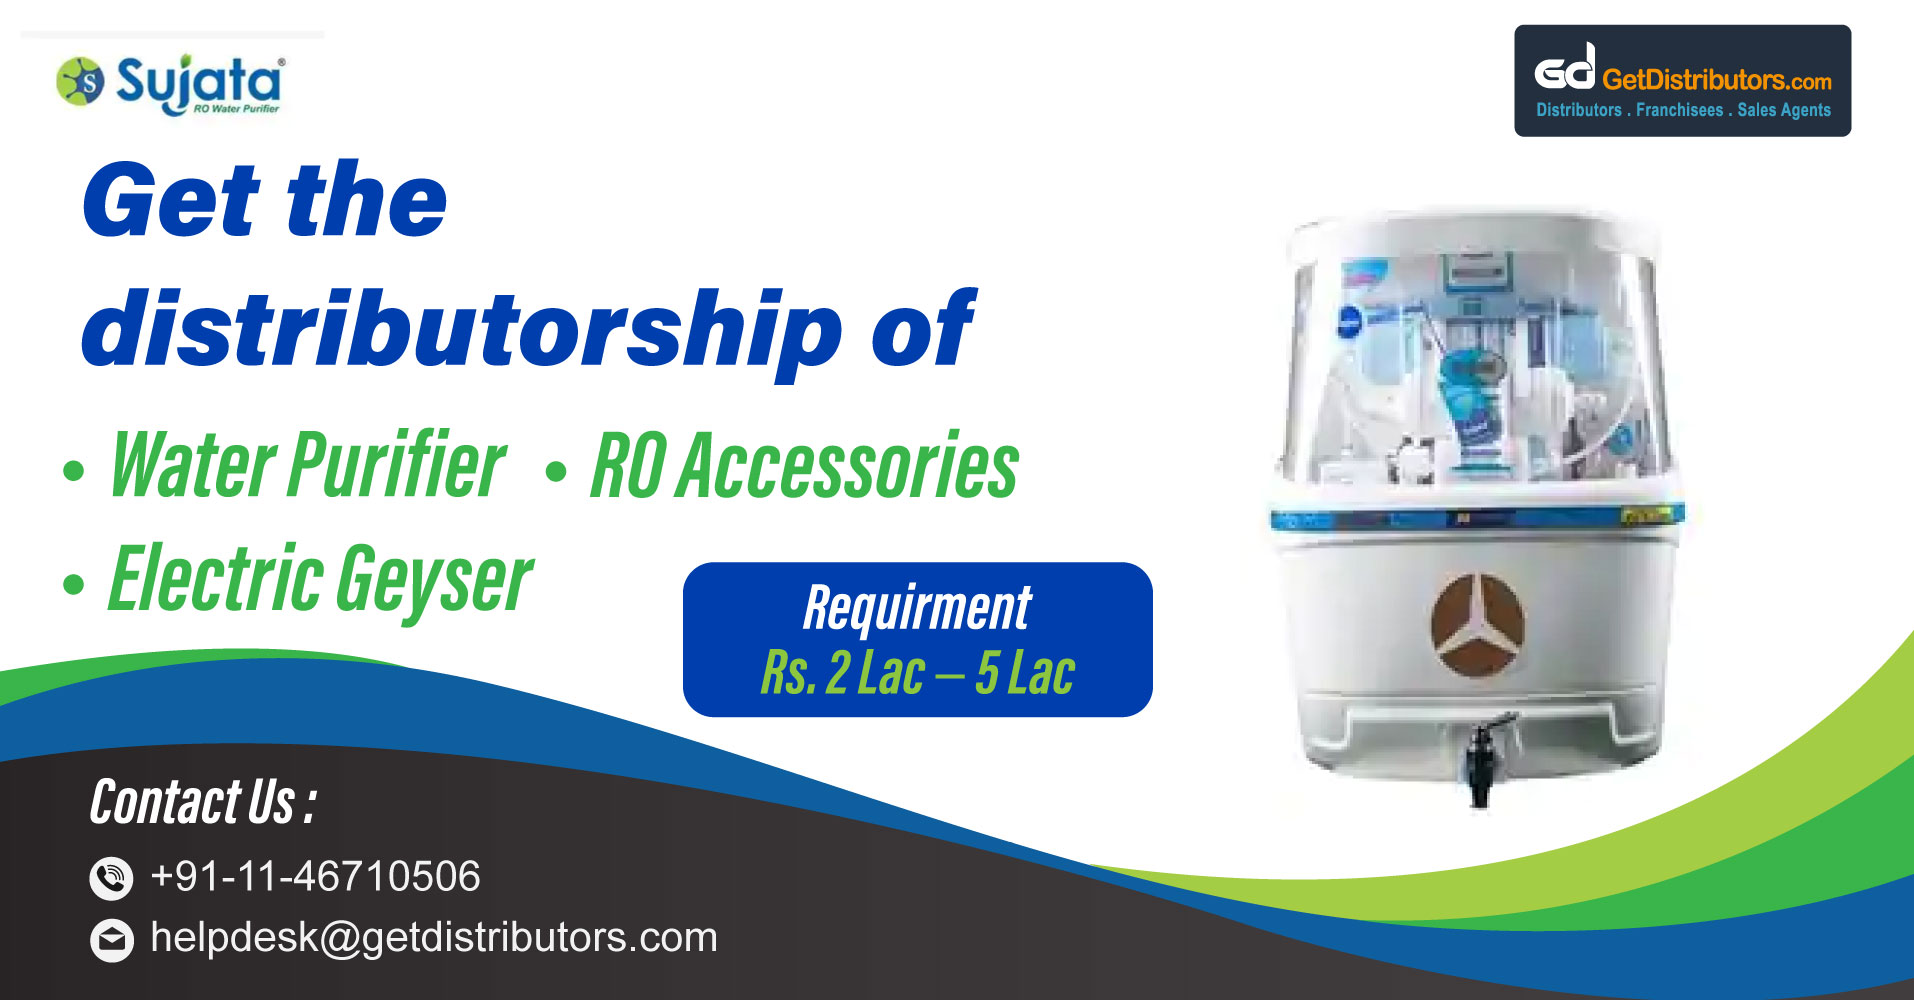 Distributorship Of Cost Efficient High-End Home Appliances To Make Your Life Easy